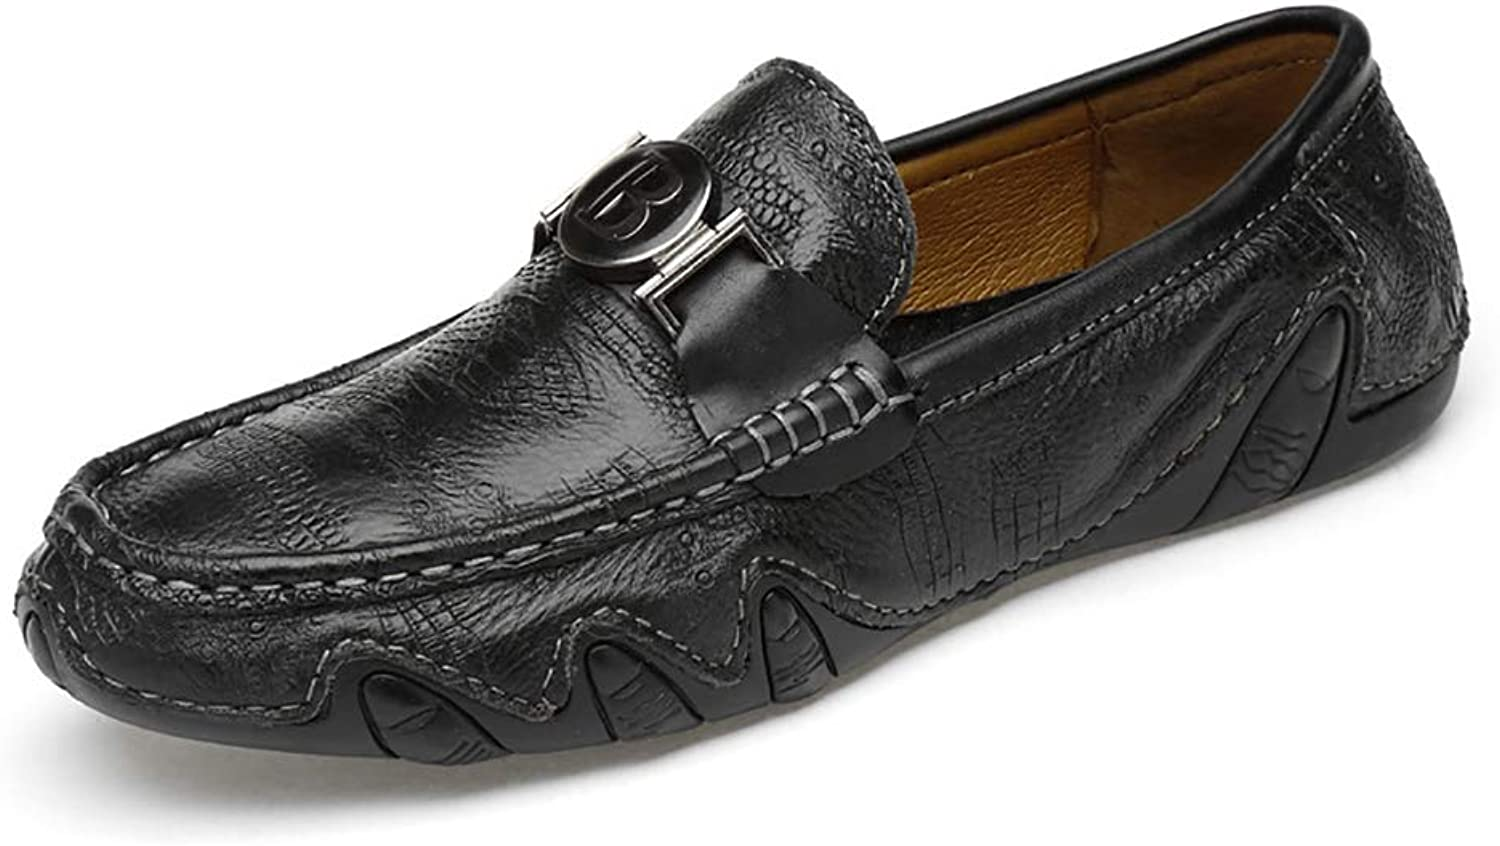 Men's Casual Loafers Flat Leather Fashion Slip On Driving shoes Moccasin Handmade Comfort Fashion Slipper,Black,41